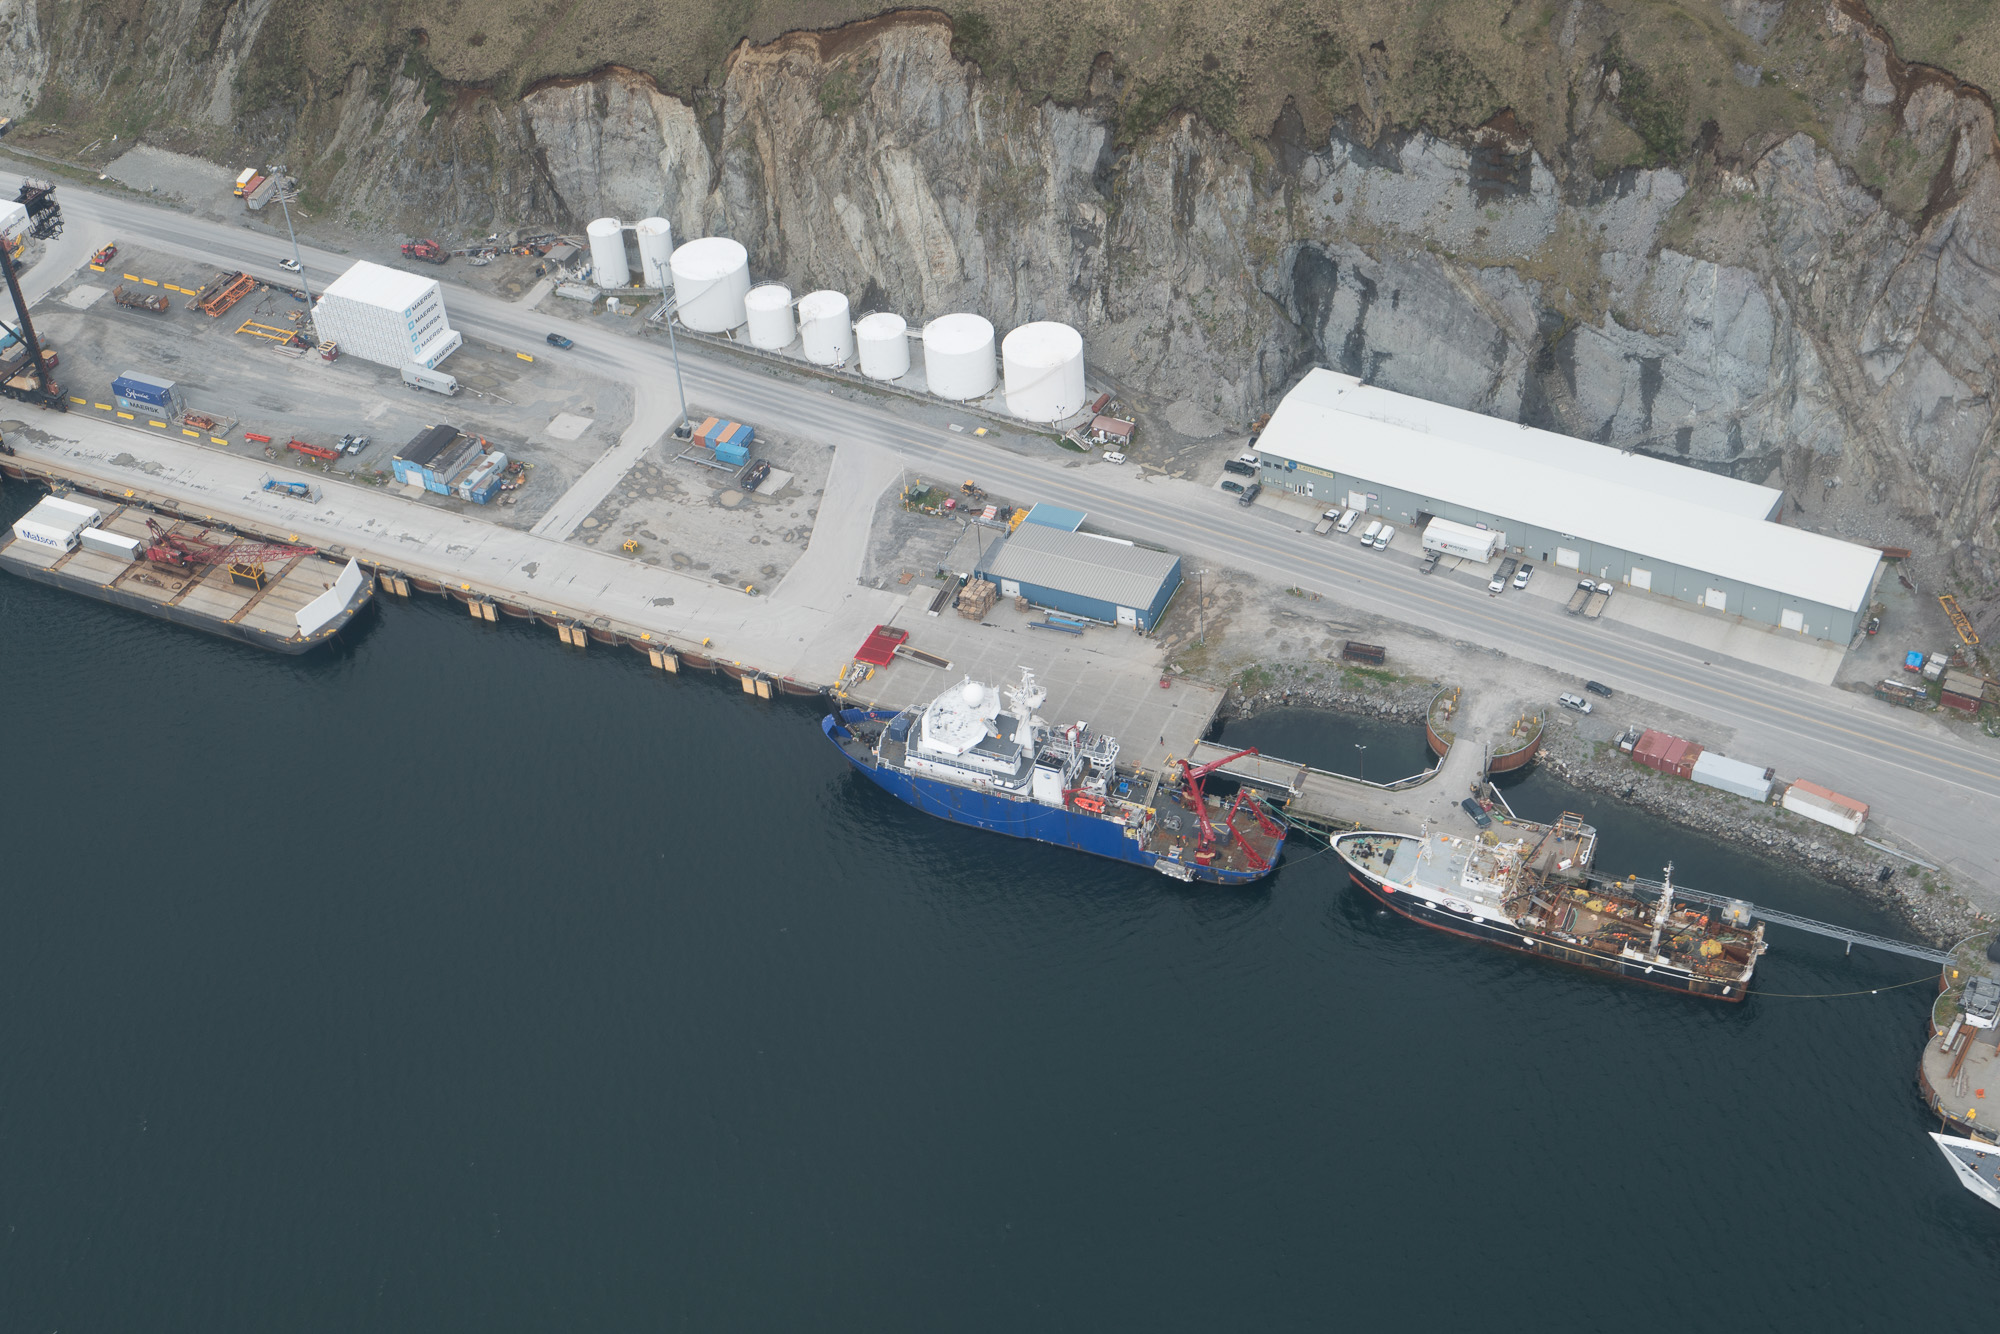 Aerial view of Sikuliaq at the Dutch Harbor docks prior to the 2017 ASGARD cruise.